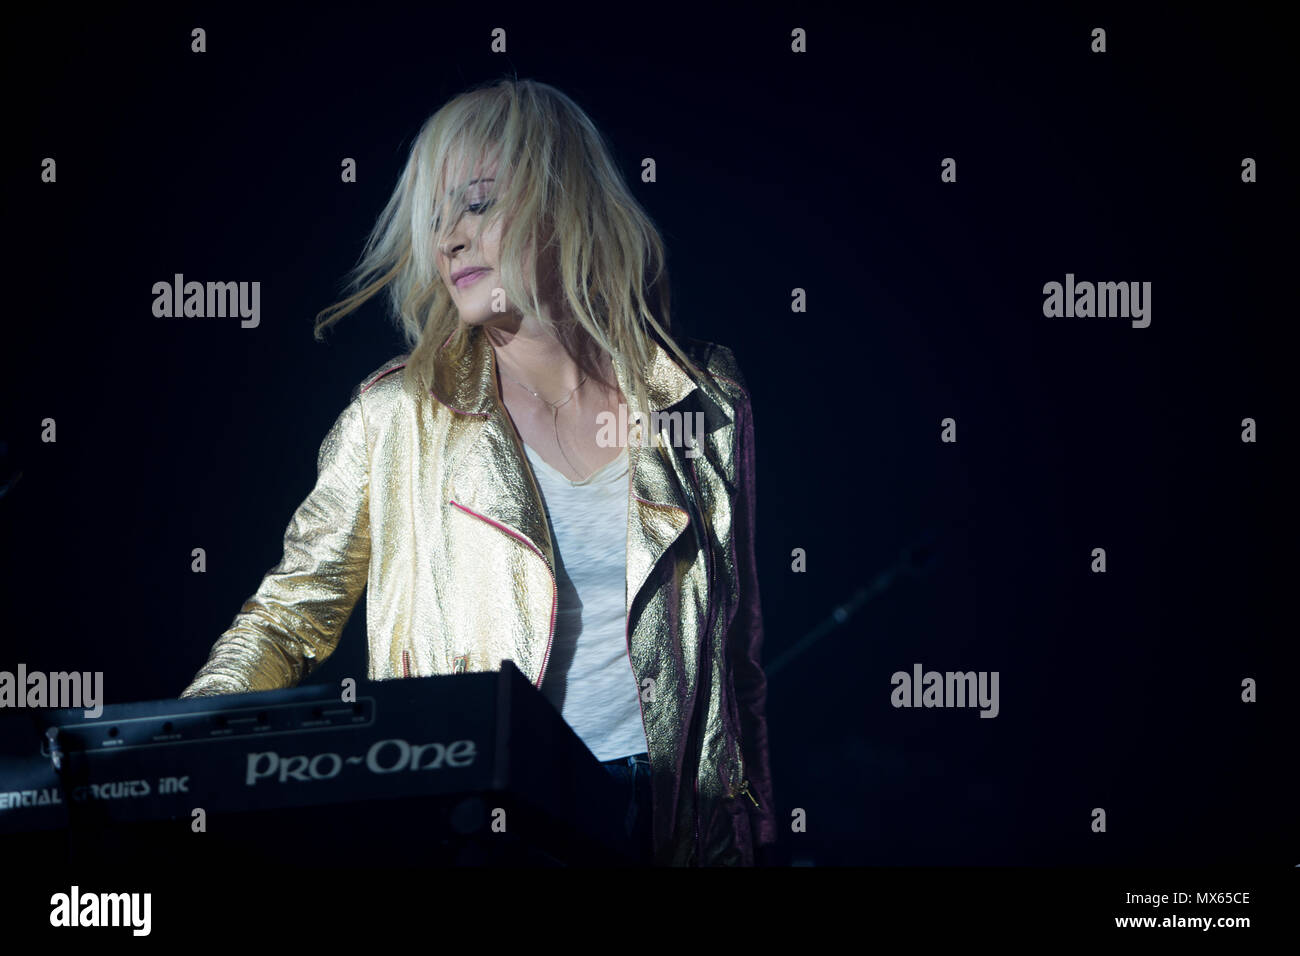 Toronto, CANADA. 02nd June 2018, Emily Haines of Canadian Pop Rock band Metric performas at the 2018 Field Trip Music & Arts Festival in Toronto. Credit: Bobby Singh/Alamay Live News Credit: topconcertphoto/Alamy Live News - Stock Image